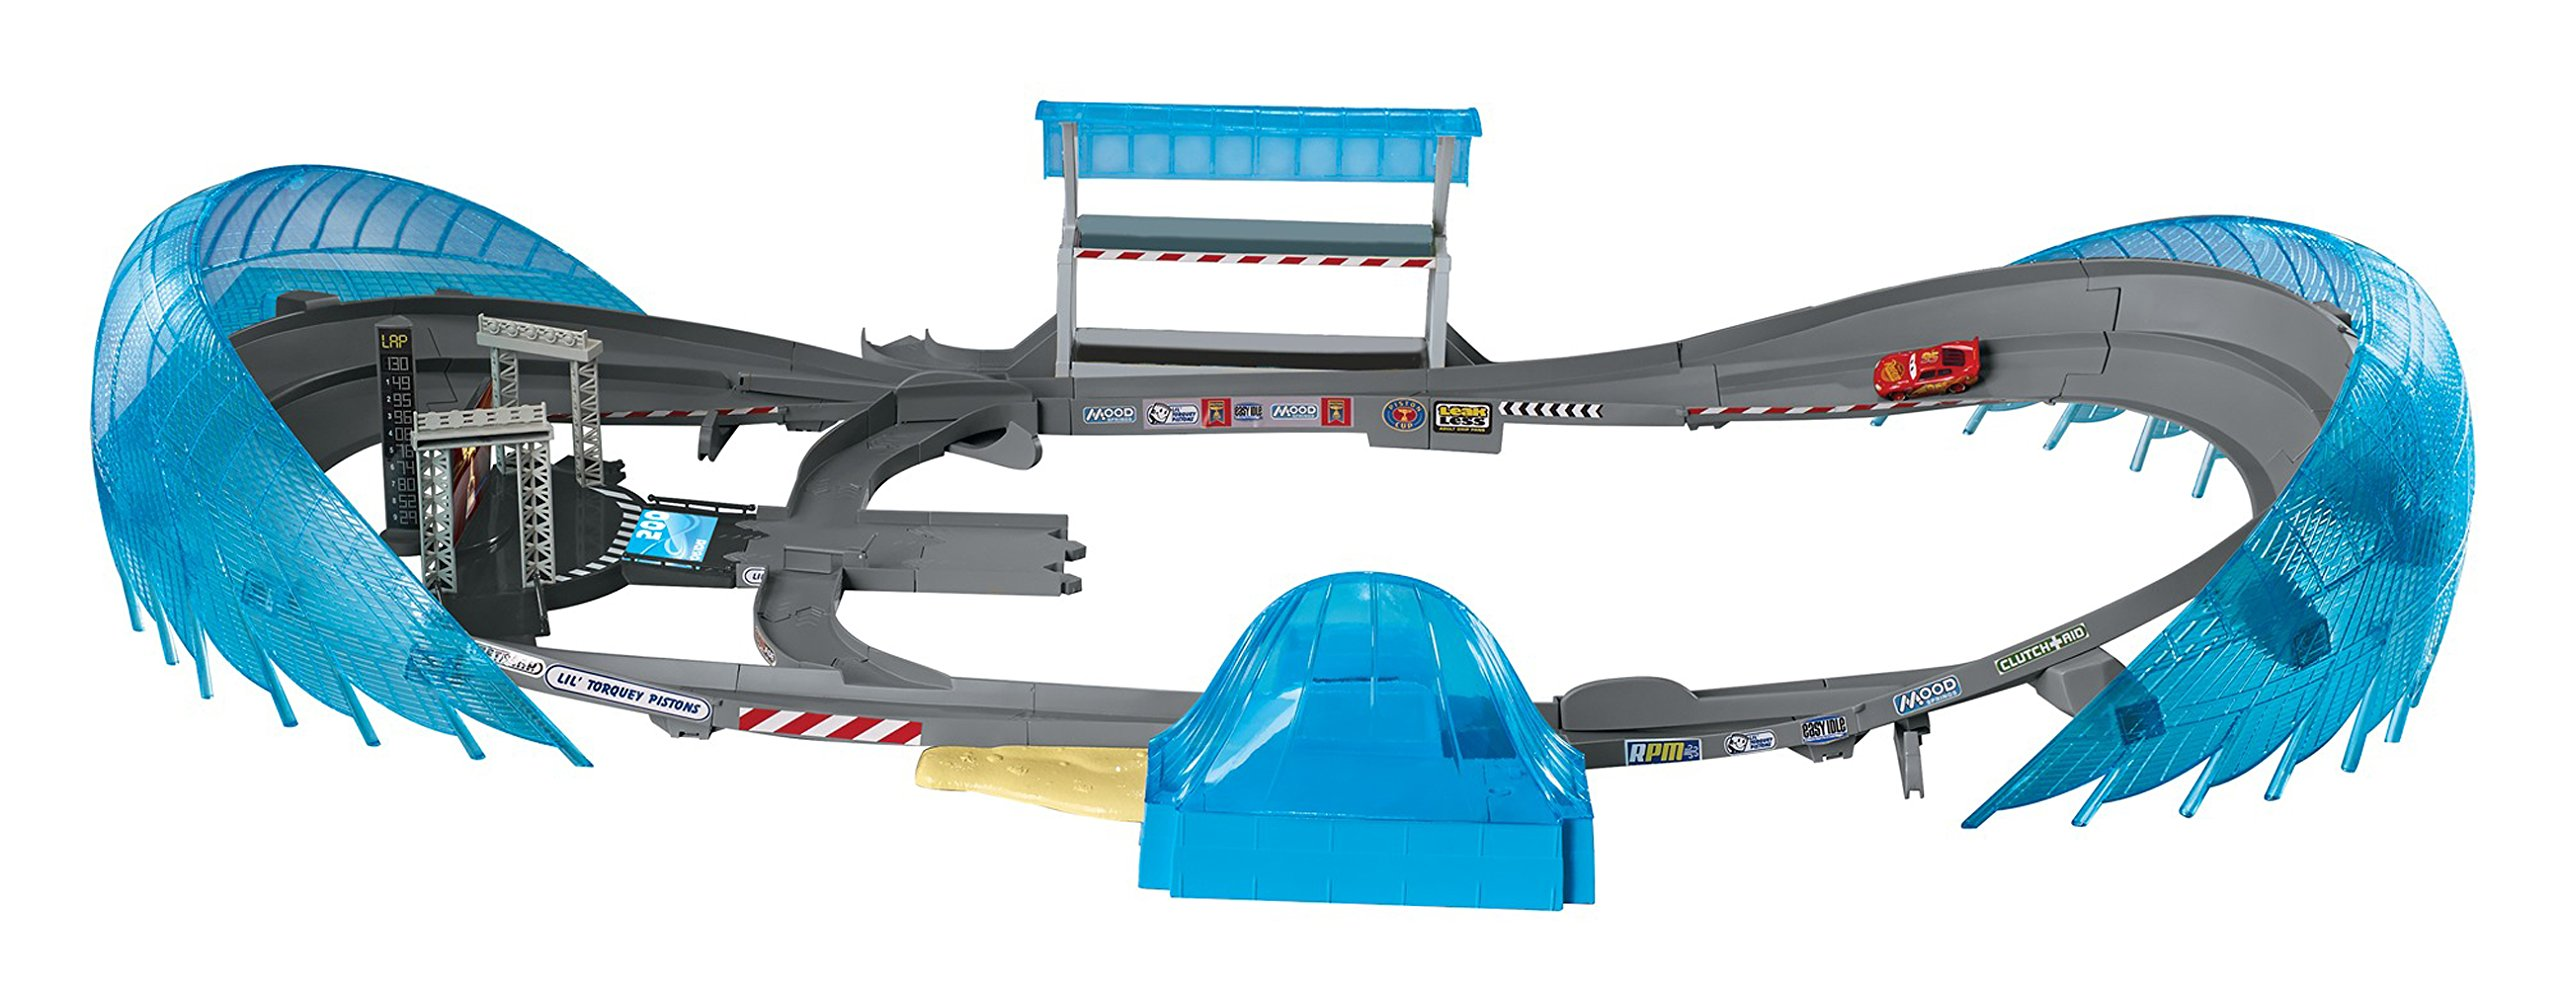 Disney/Pixar Cars 3 Ultimate Florida Speedway Track Set